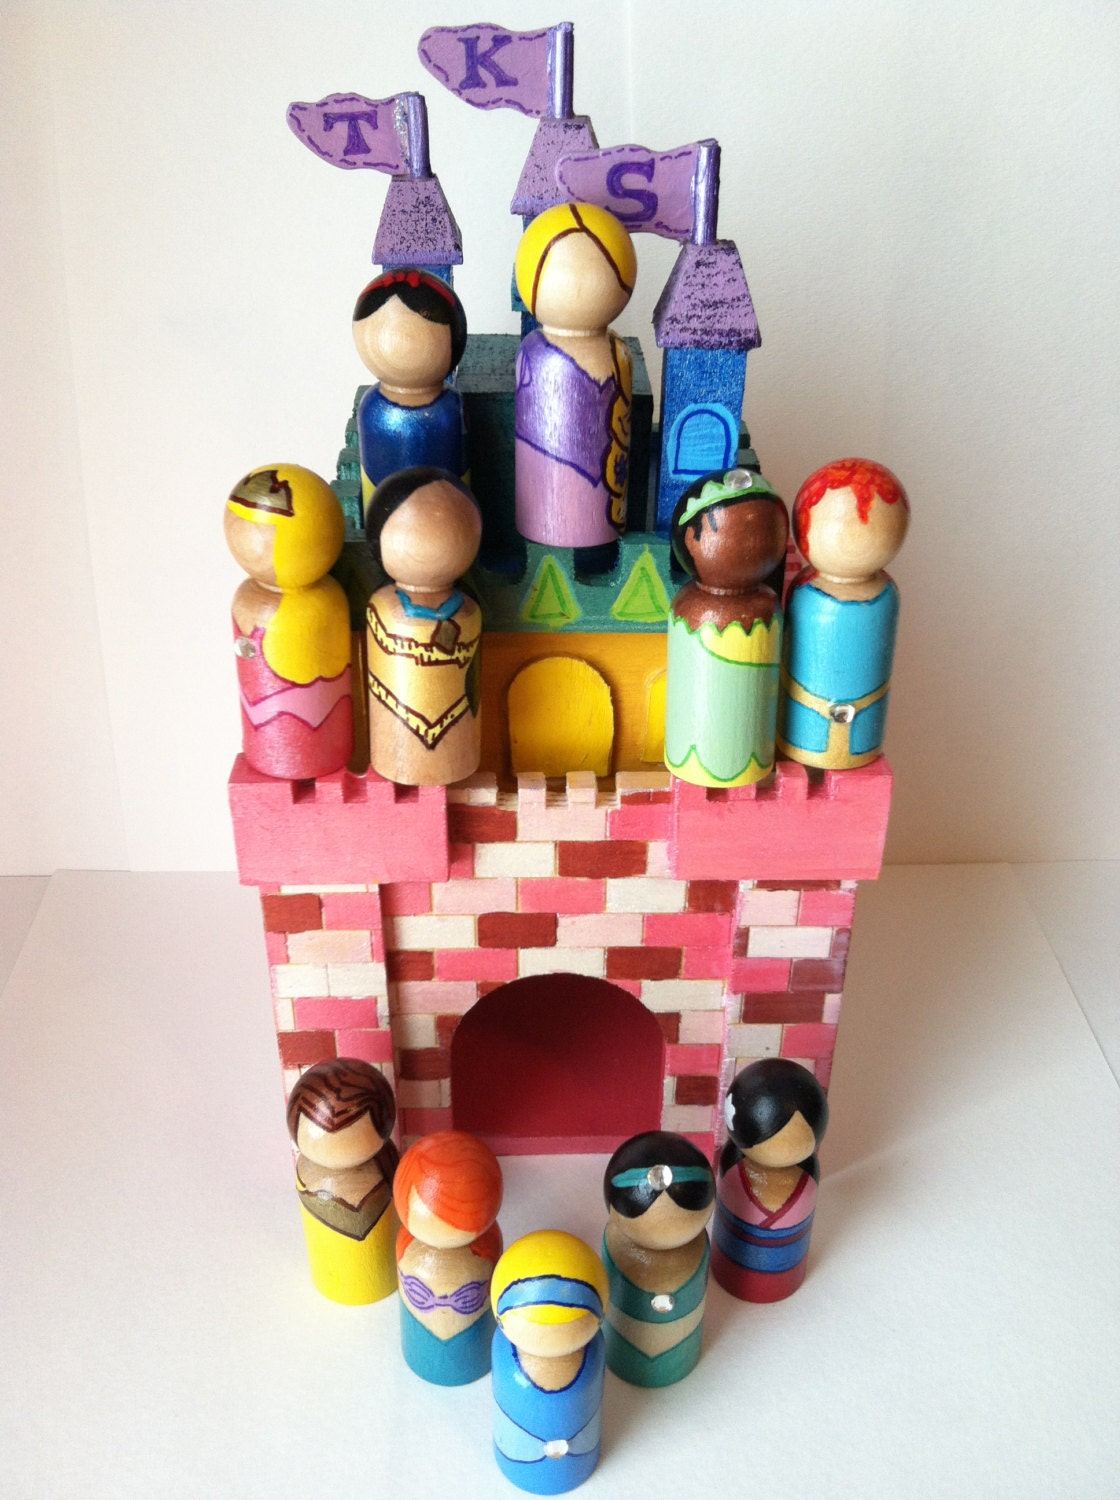 Princess Collection Peg Dolls - The Whimsical Sweet Etsy Shop